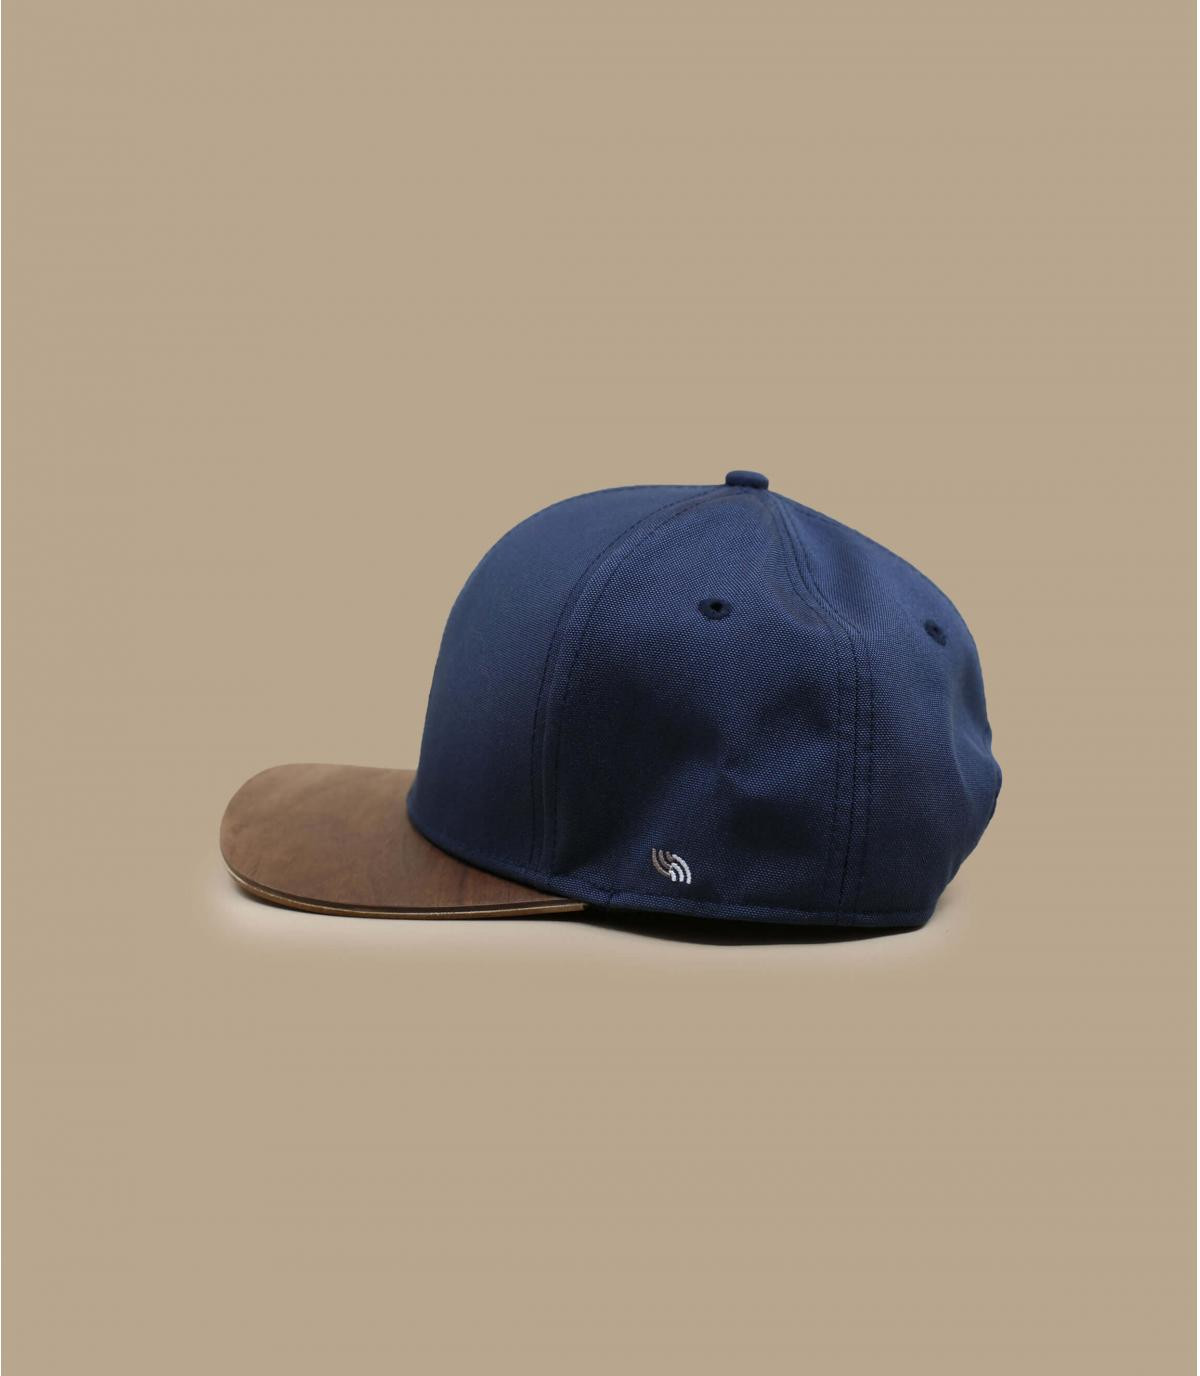 Details Snapback Recycled navy - Abbildung 3